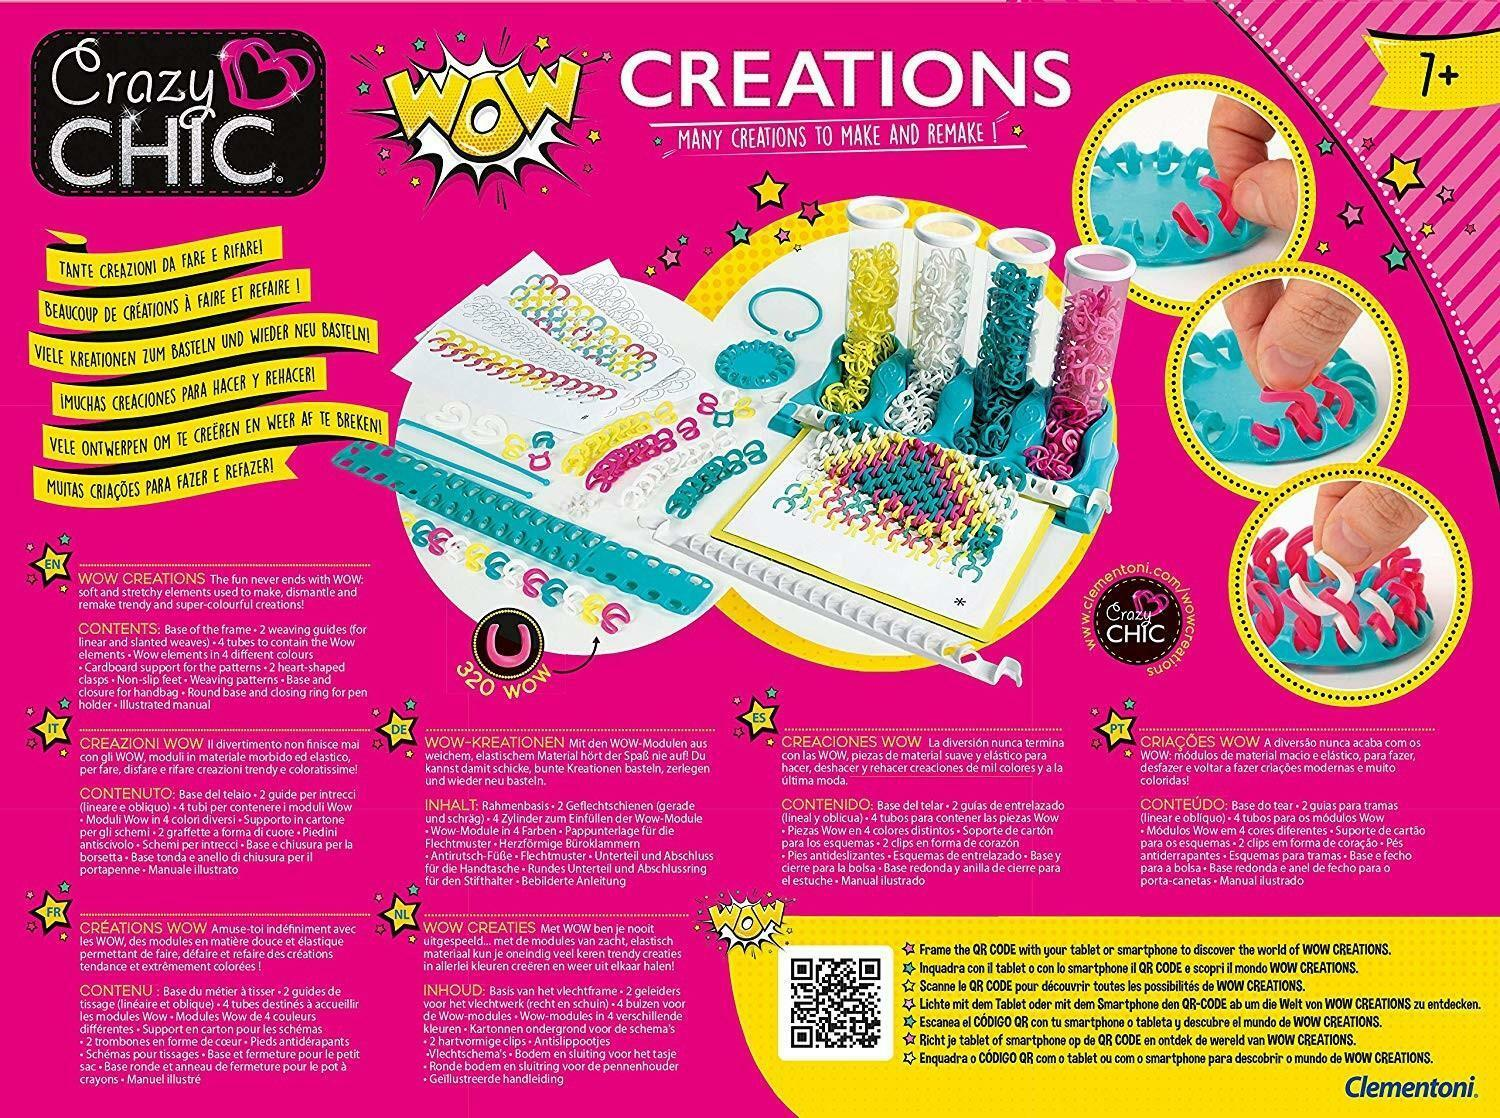 clementoni crazy chic - wow creations 18540